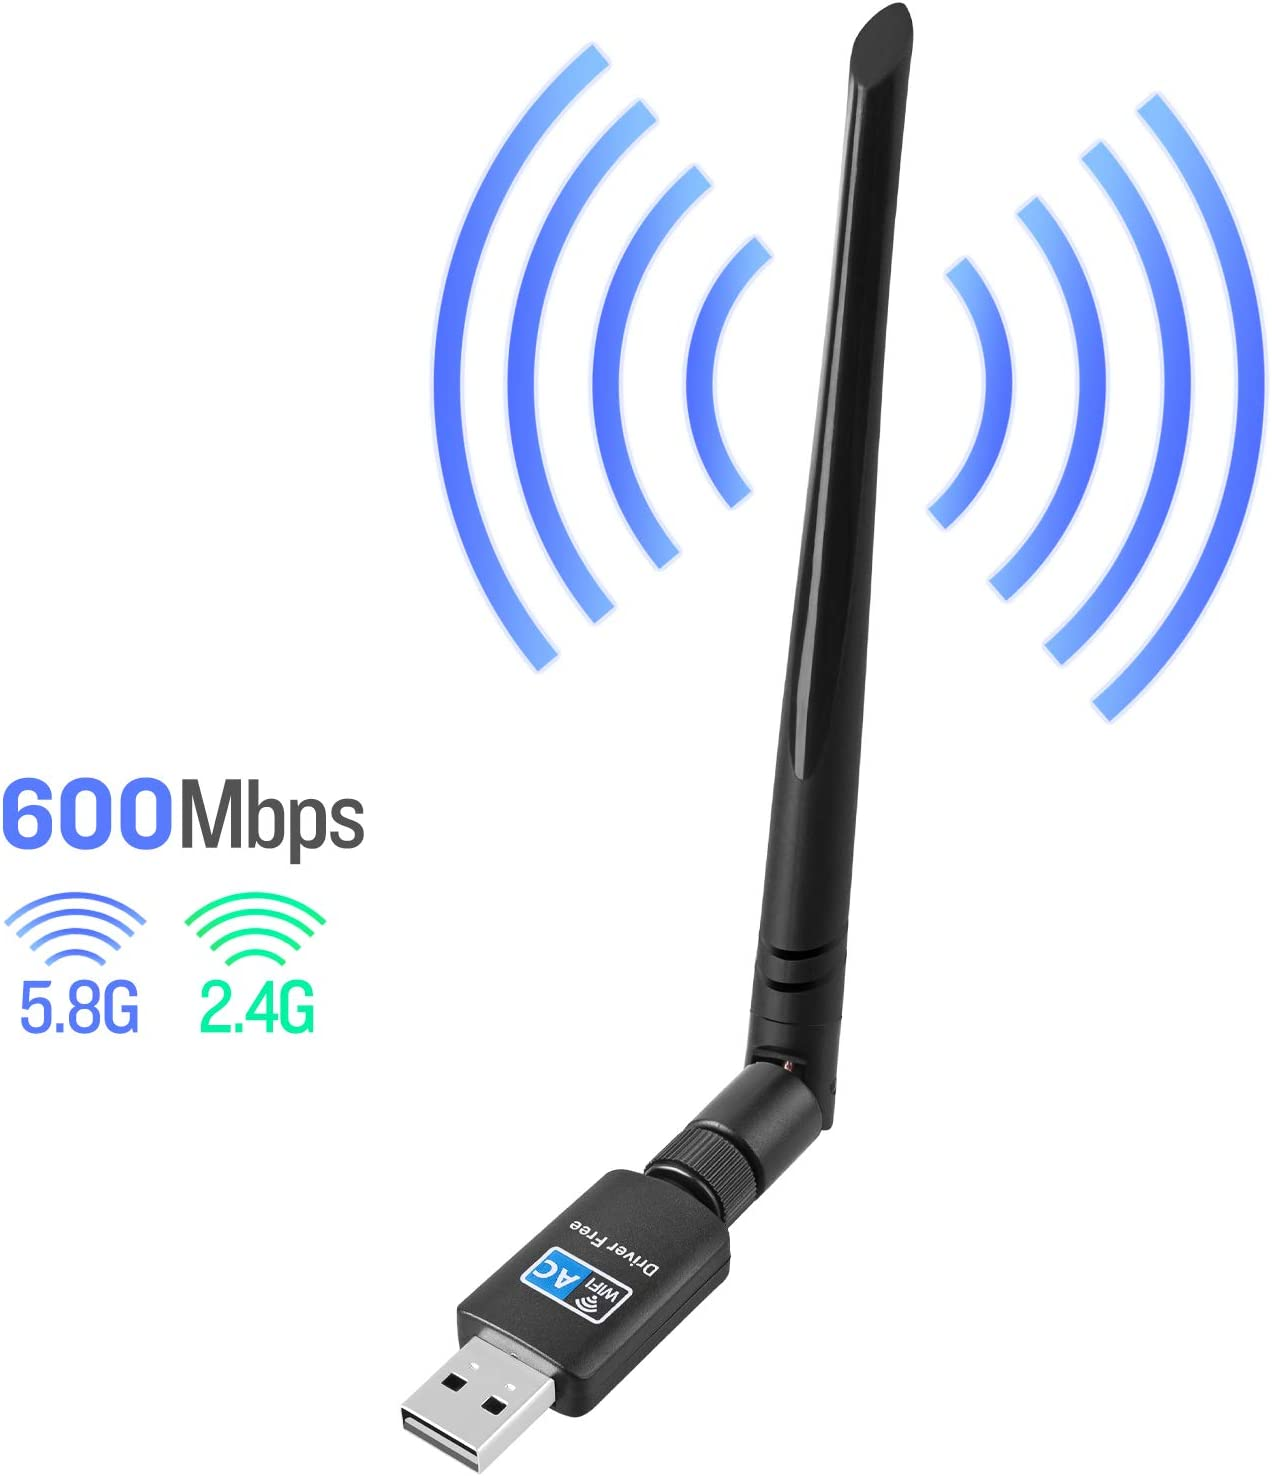 WiFi Adapter for PC 600Mbps,802.11ac USB Wireless Network Adapter with Dual Band 2.4GHz/5.8GHz 5dBi High Gain Antenna for Desktop Compatible with Windows 10/8/7/Vista/XP Mac OS